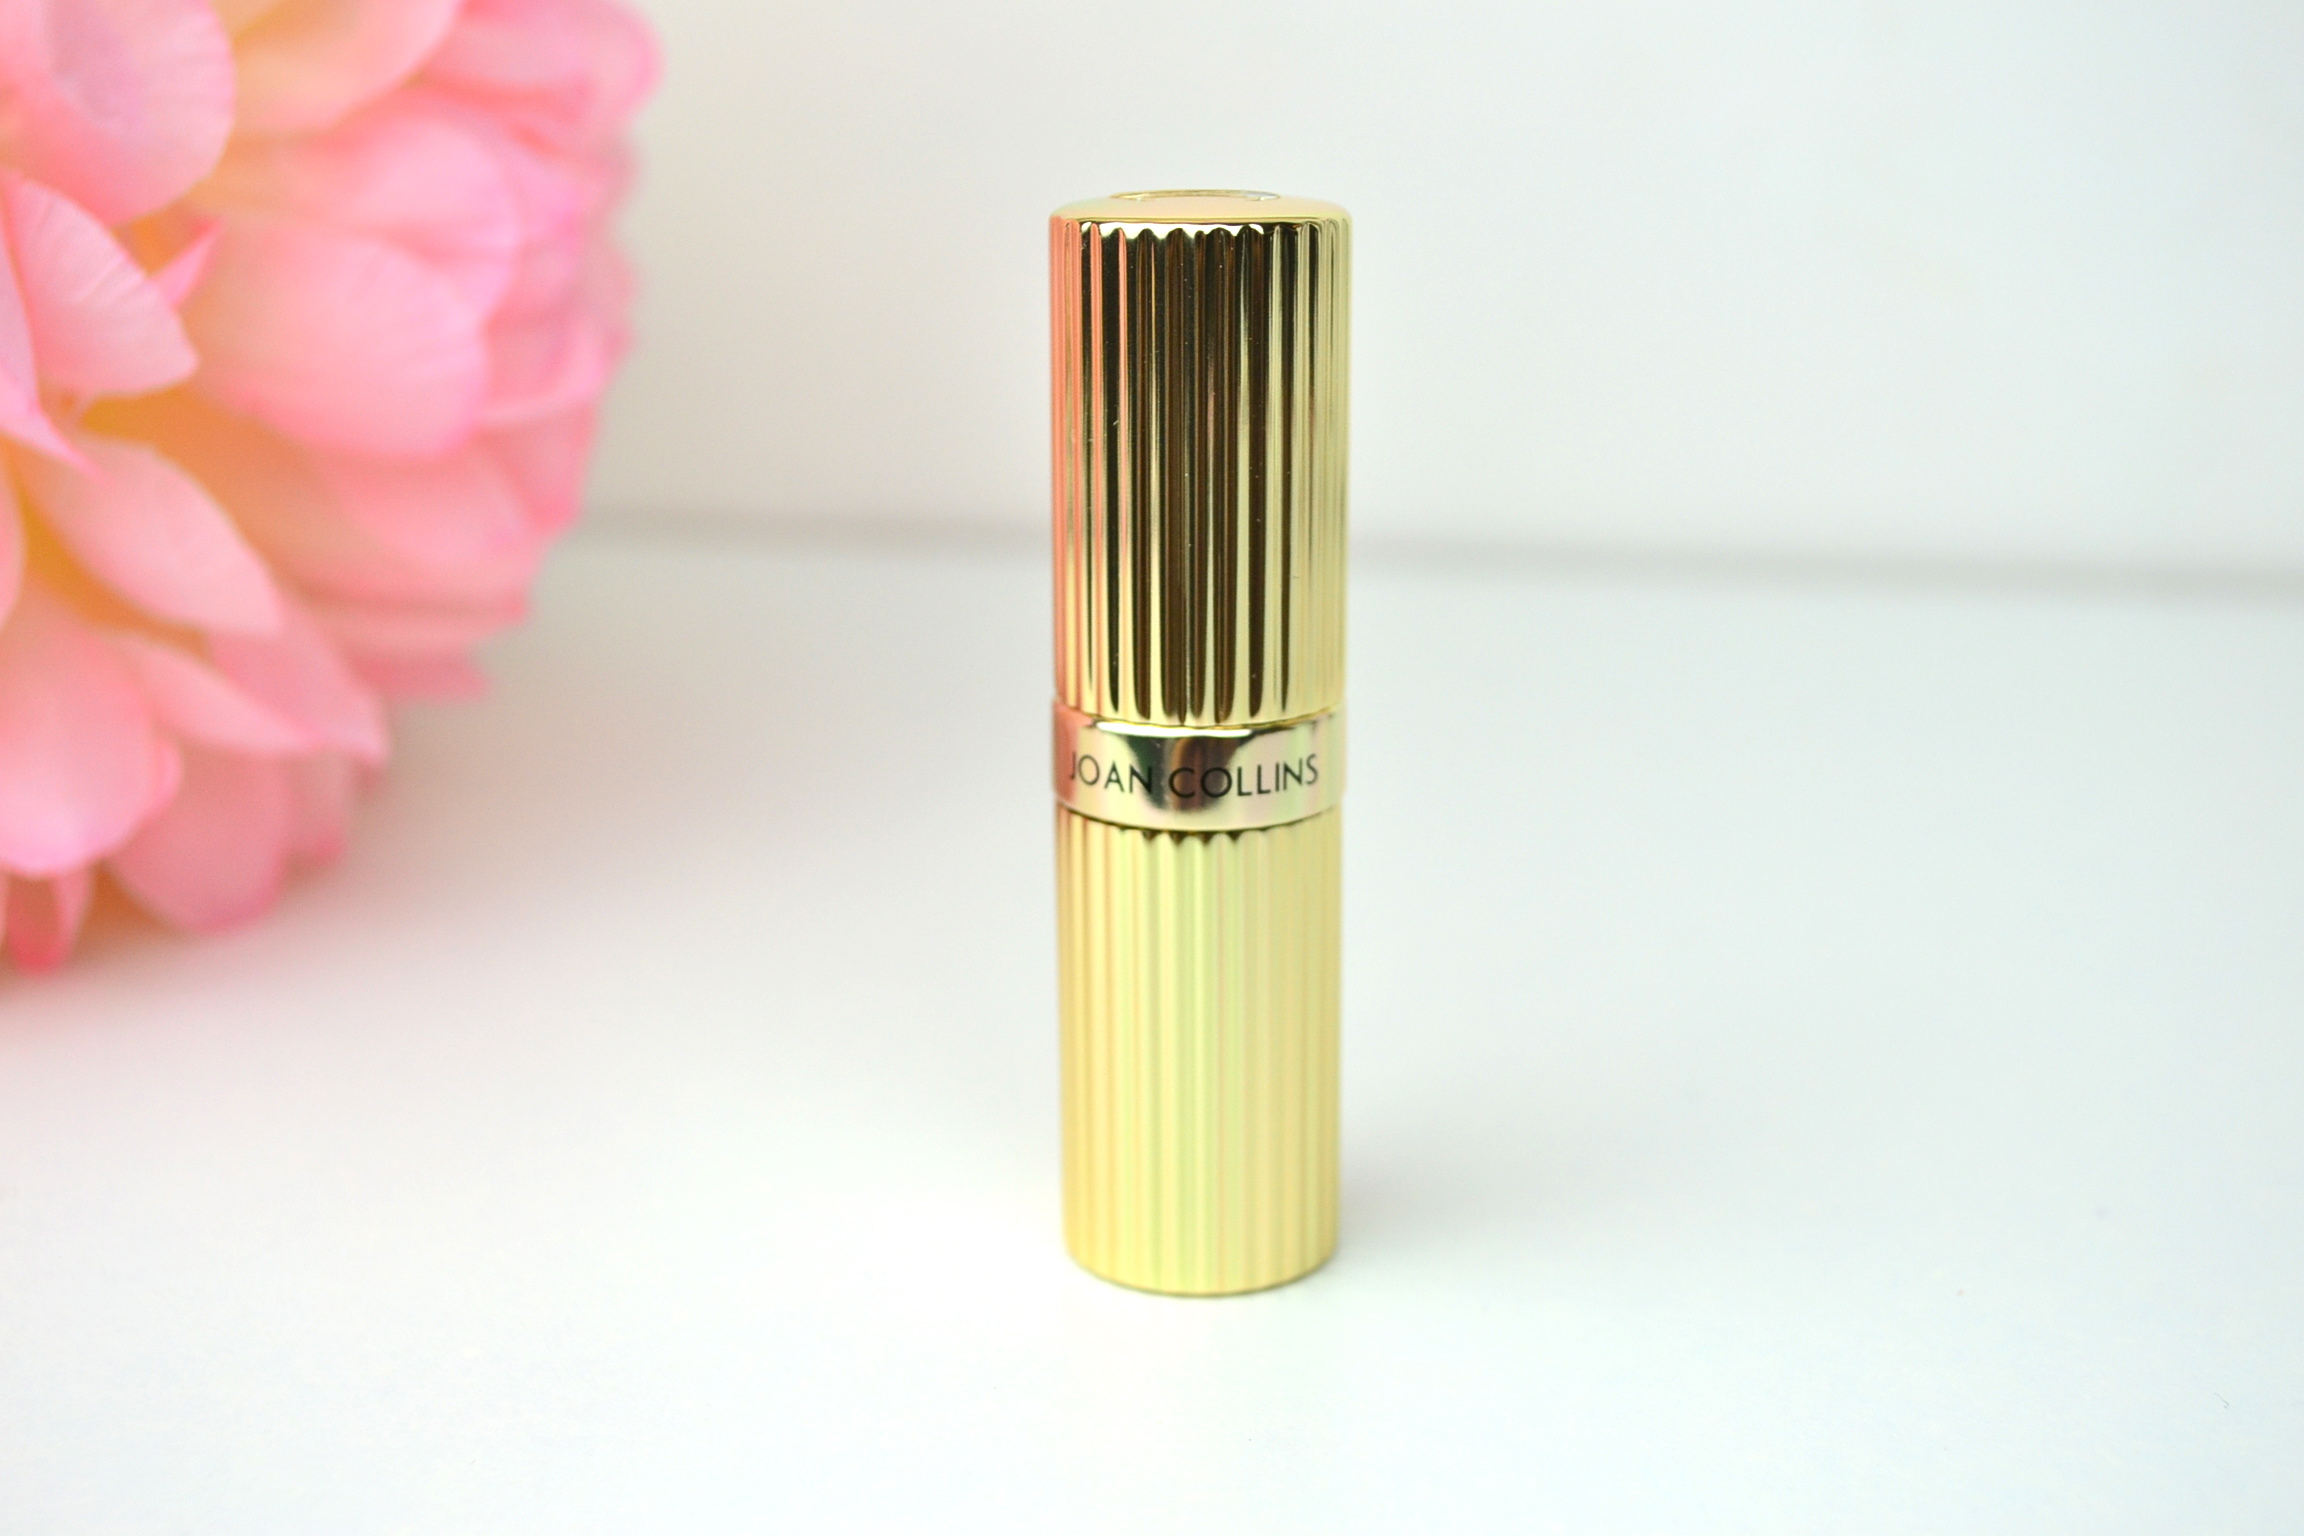 Joan Collins Timeless Beauty - Divine Lips Review